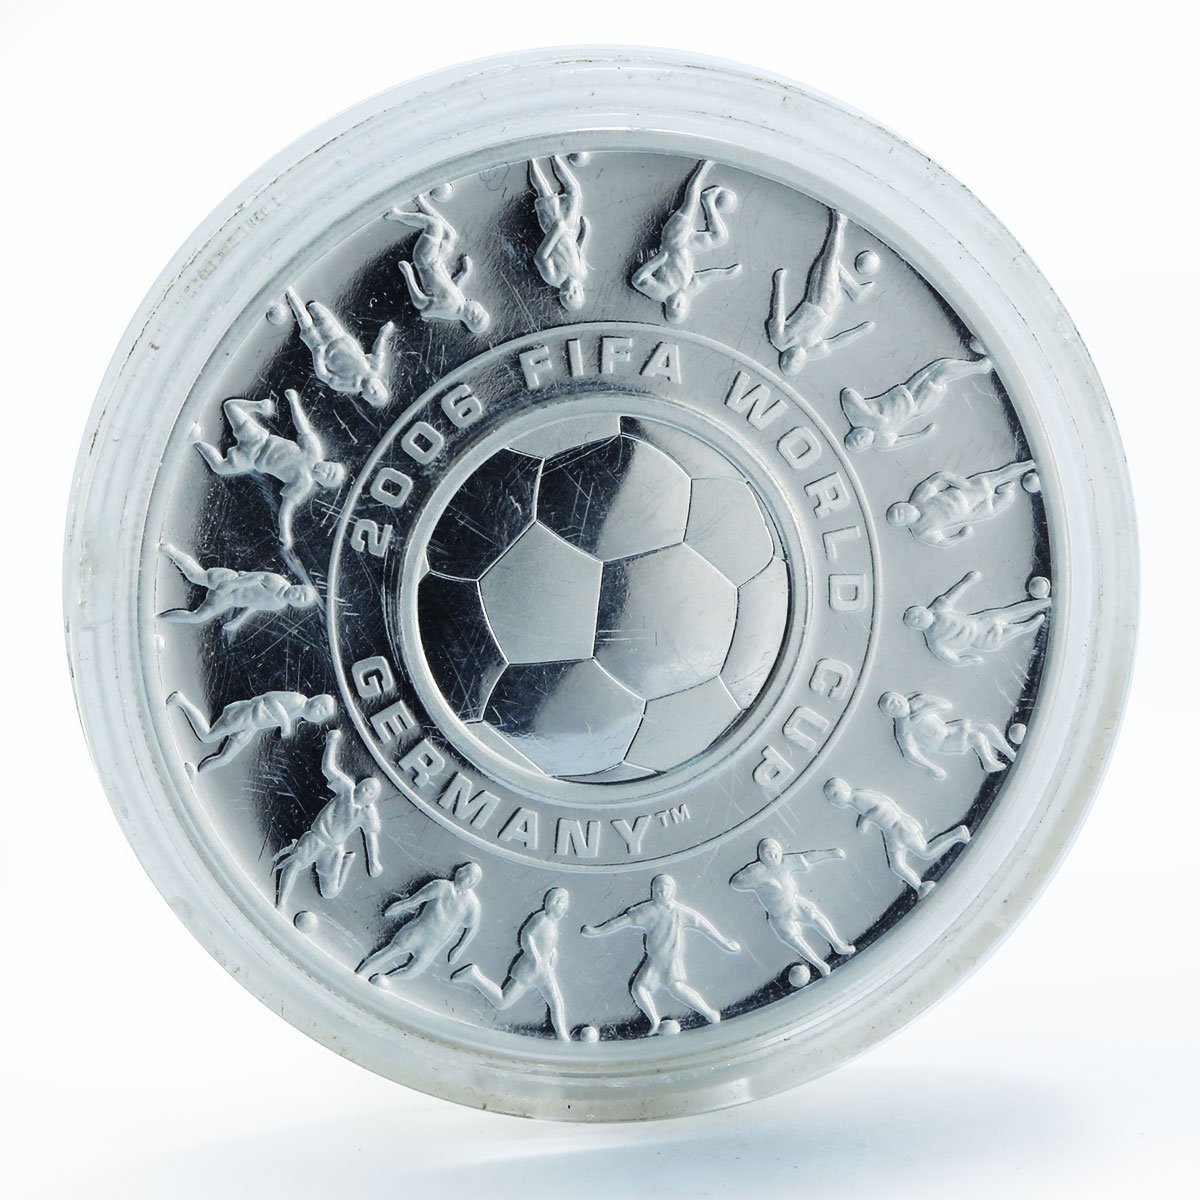 Australia 1 dollar 25 cents FIFA World Cup Holey dollar & Dump silver coin 2006